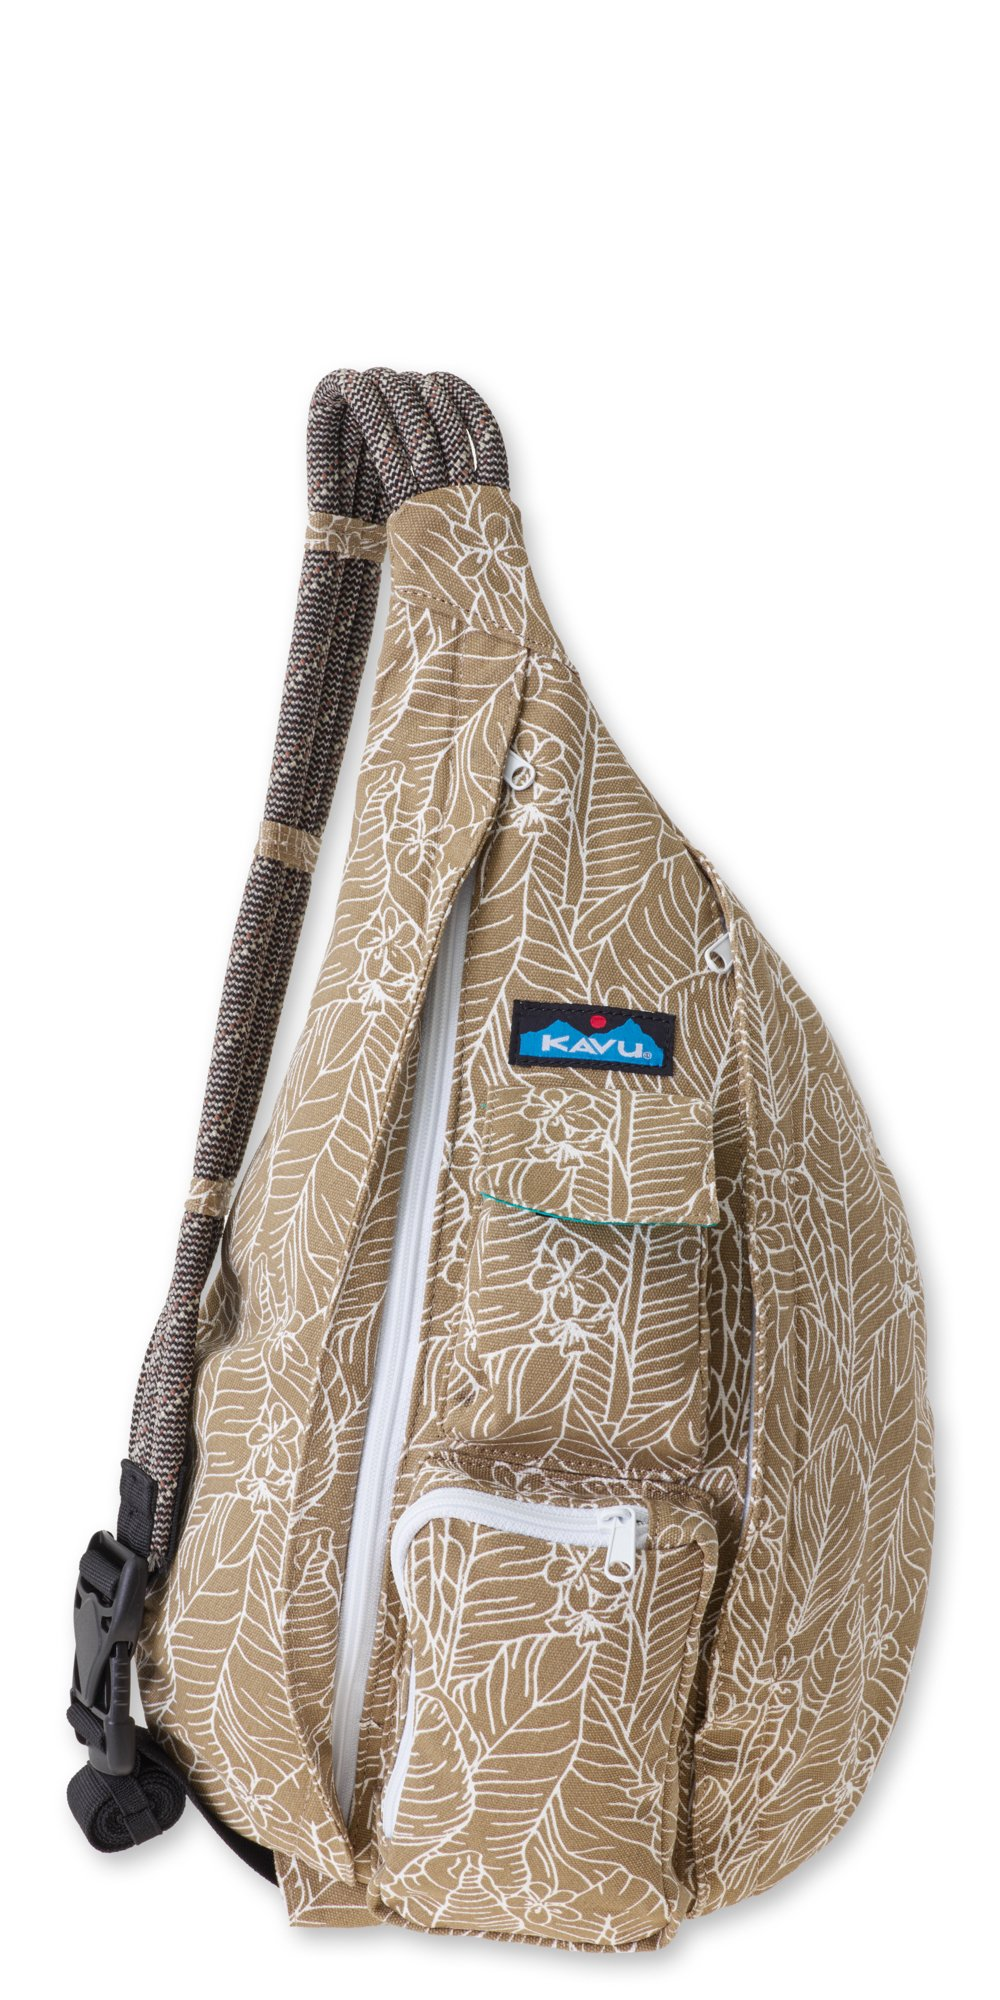 97c049bb2c KAVU Rope Bag